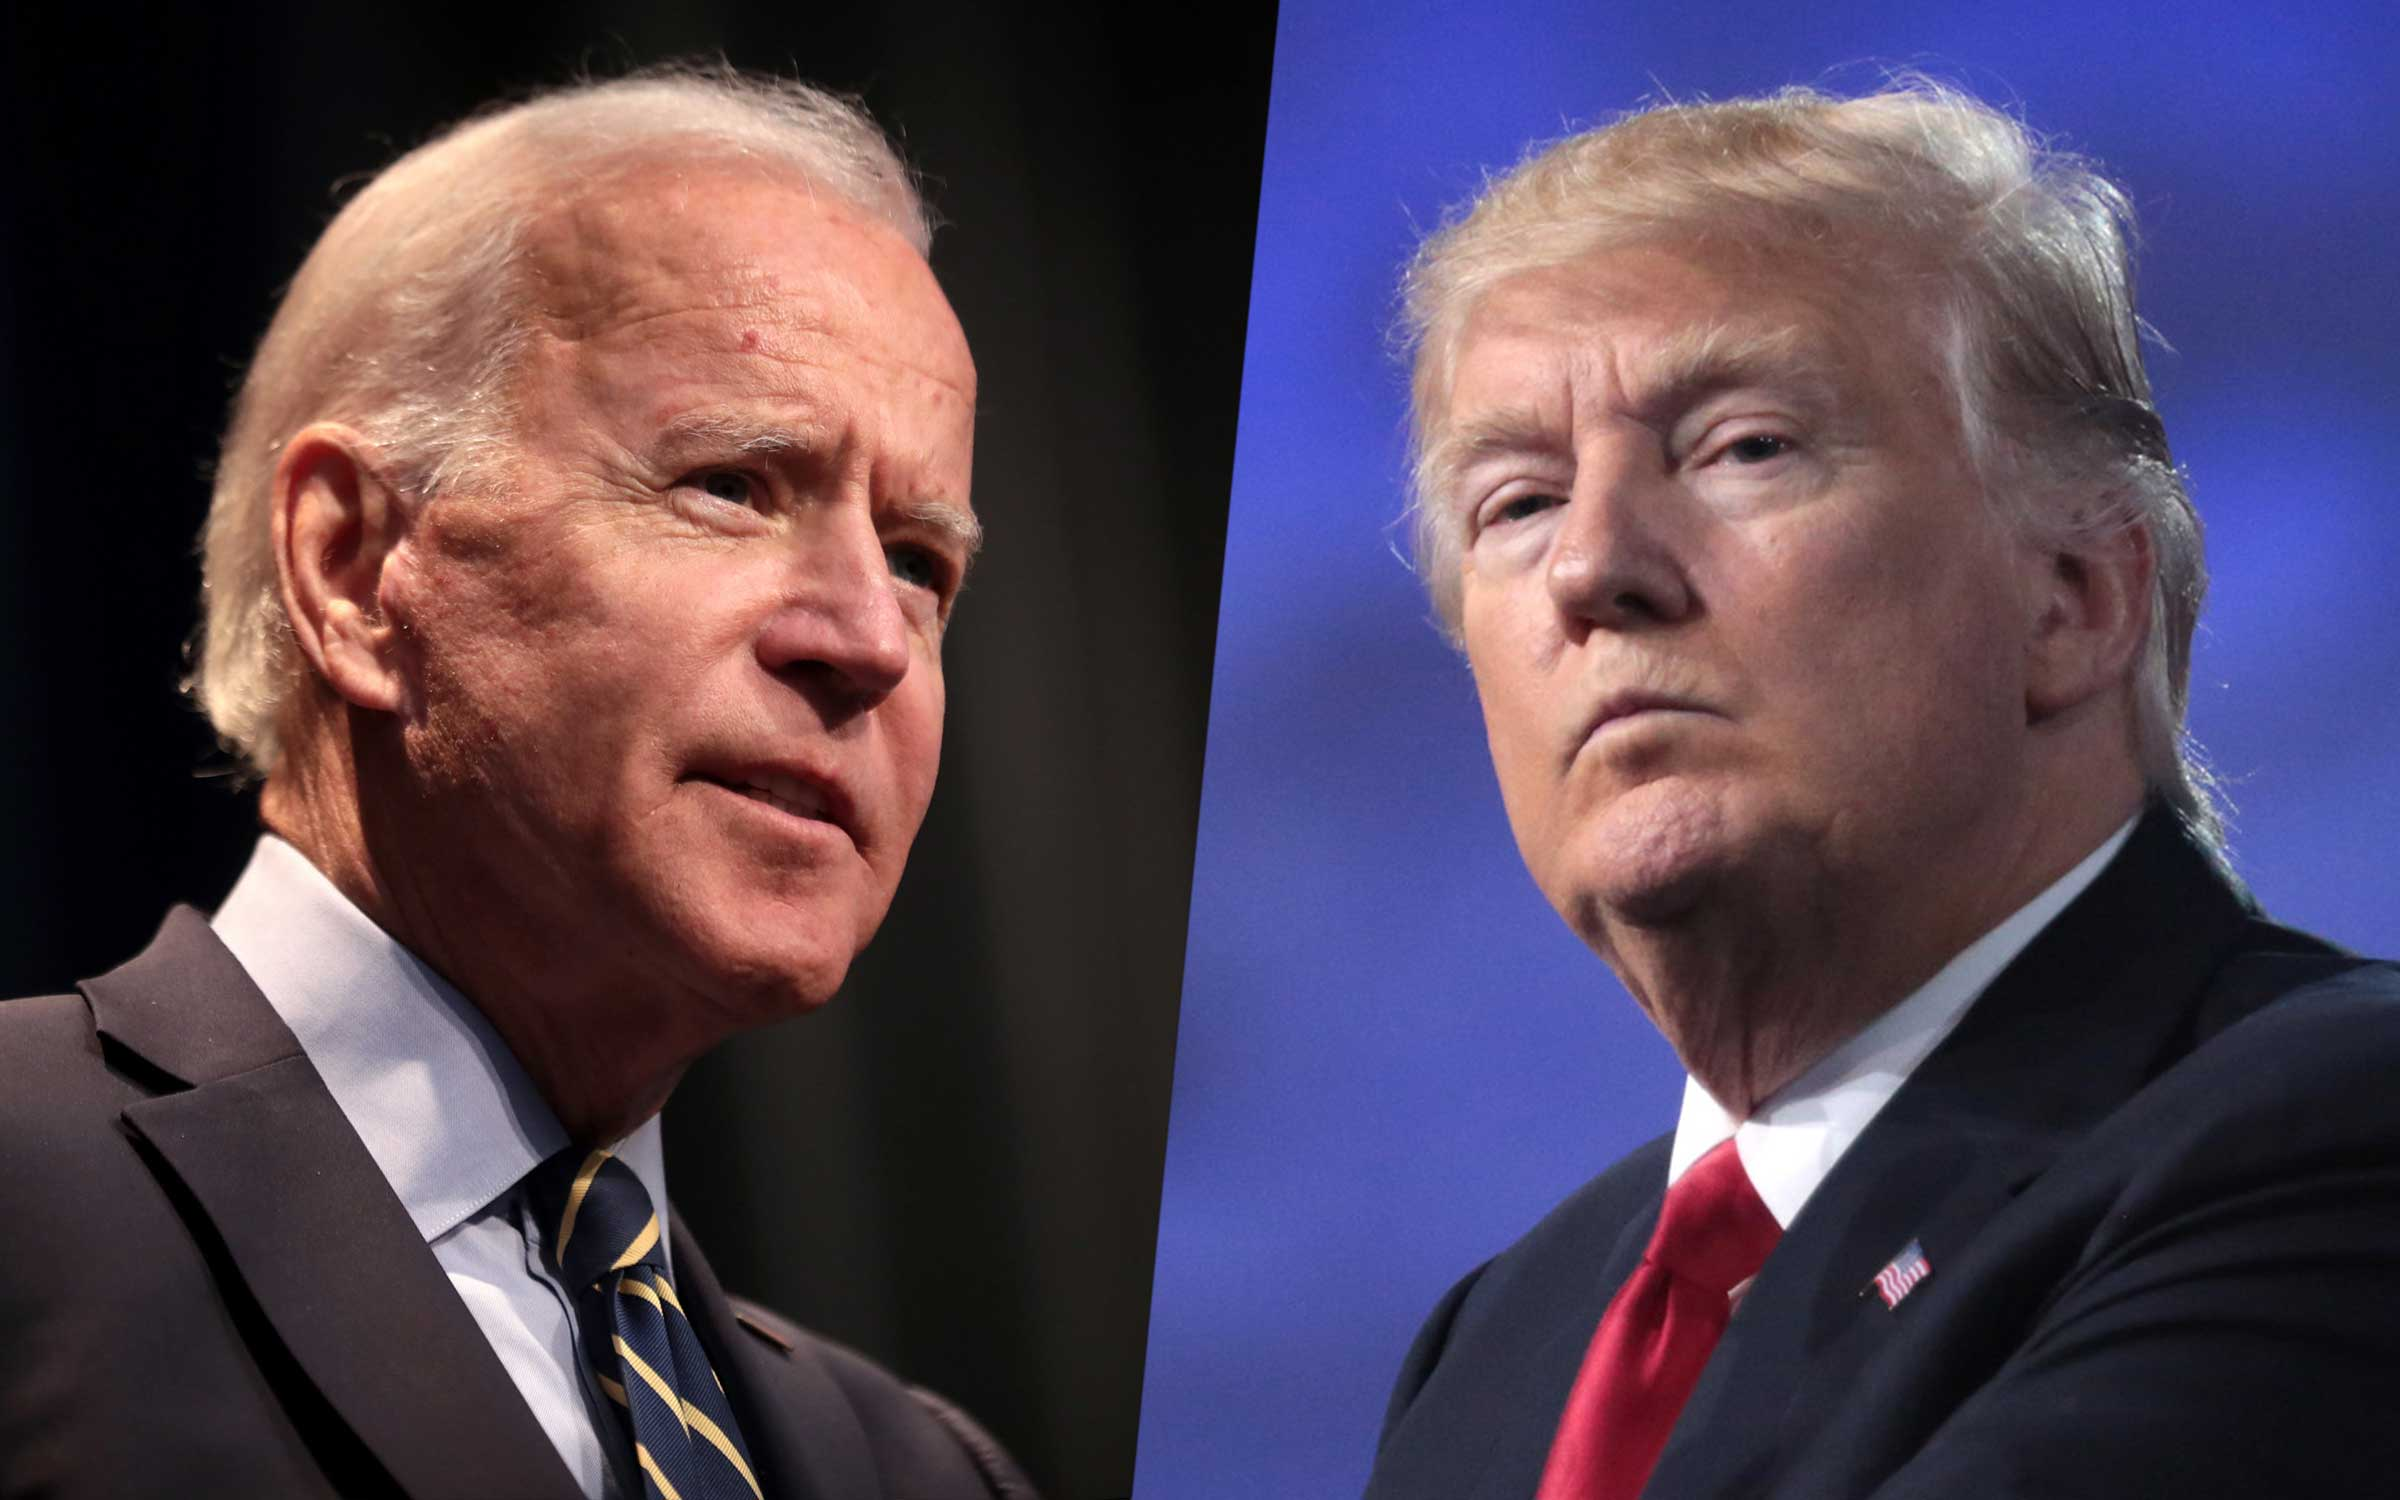 Joe Biden and Donald Trump, both old white men, in a collage. Biden is speaking, and Trump looks bothered.